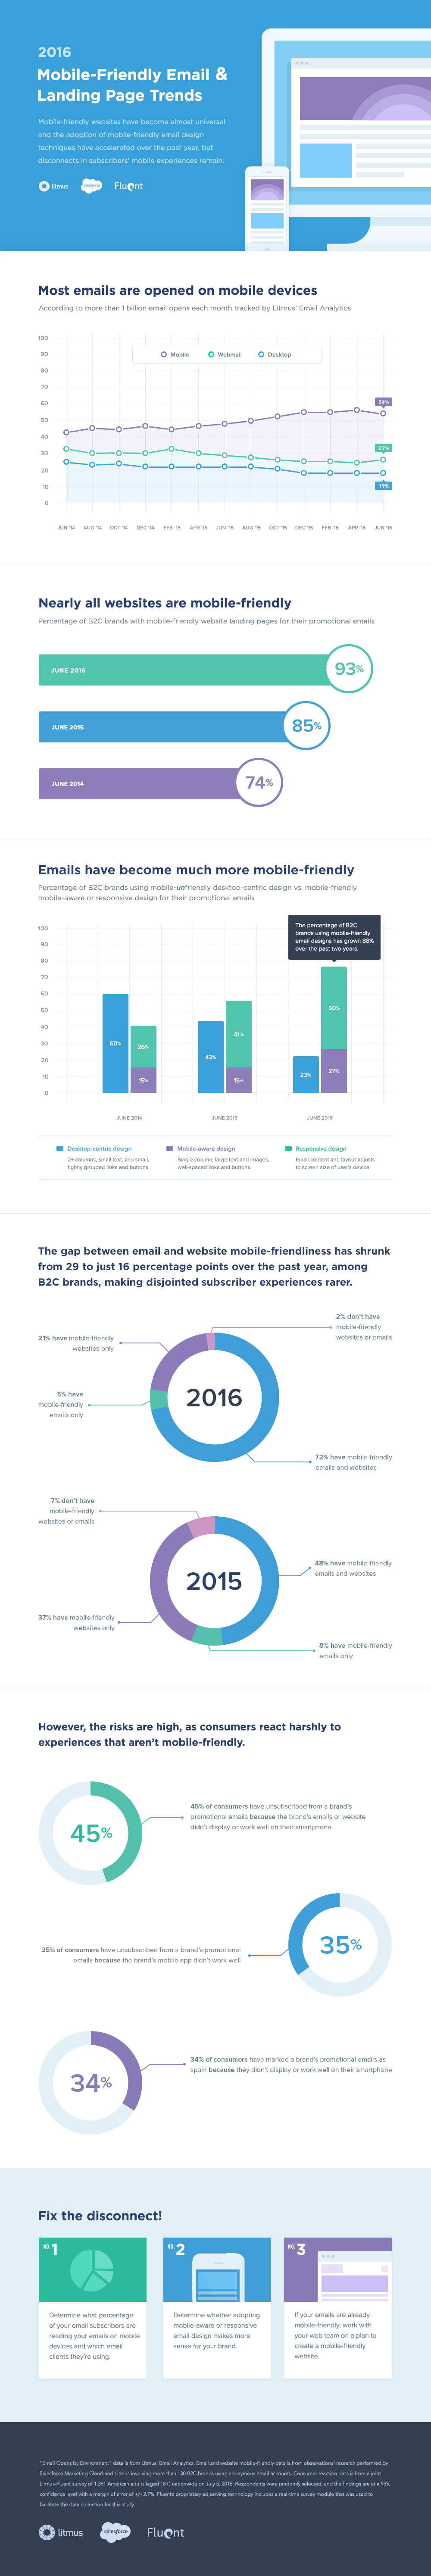 2016 Mobile-Friendly Email & Landing Page Trends Infographic